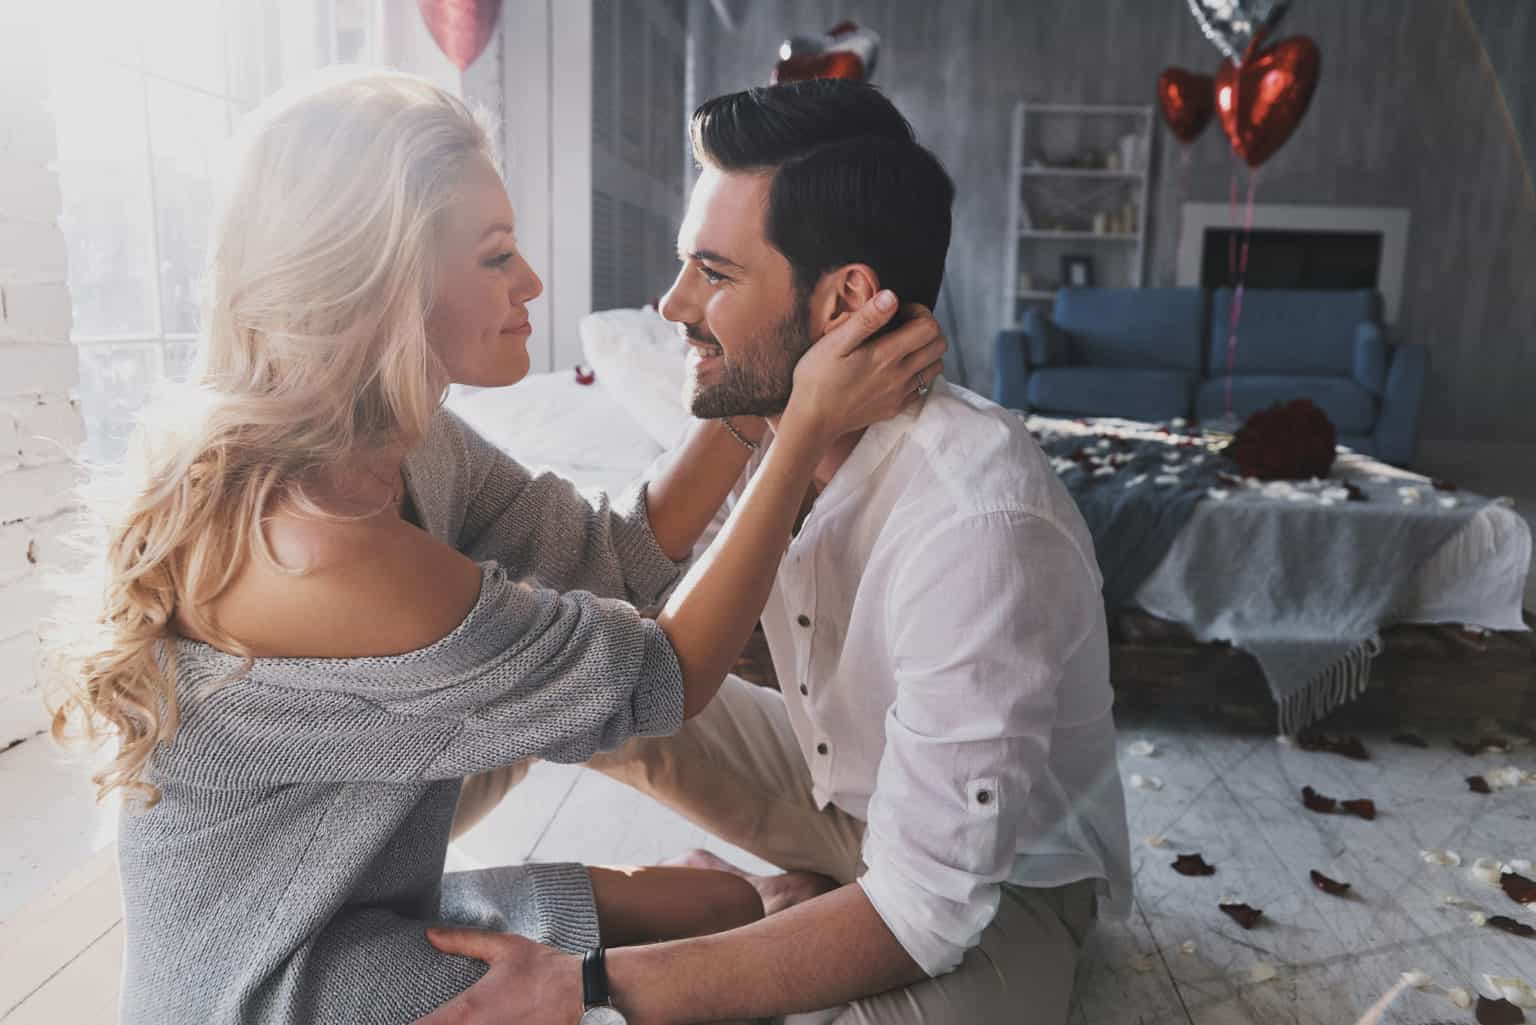 47 Ways To Make A Scorpio Man Fall In Love With You